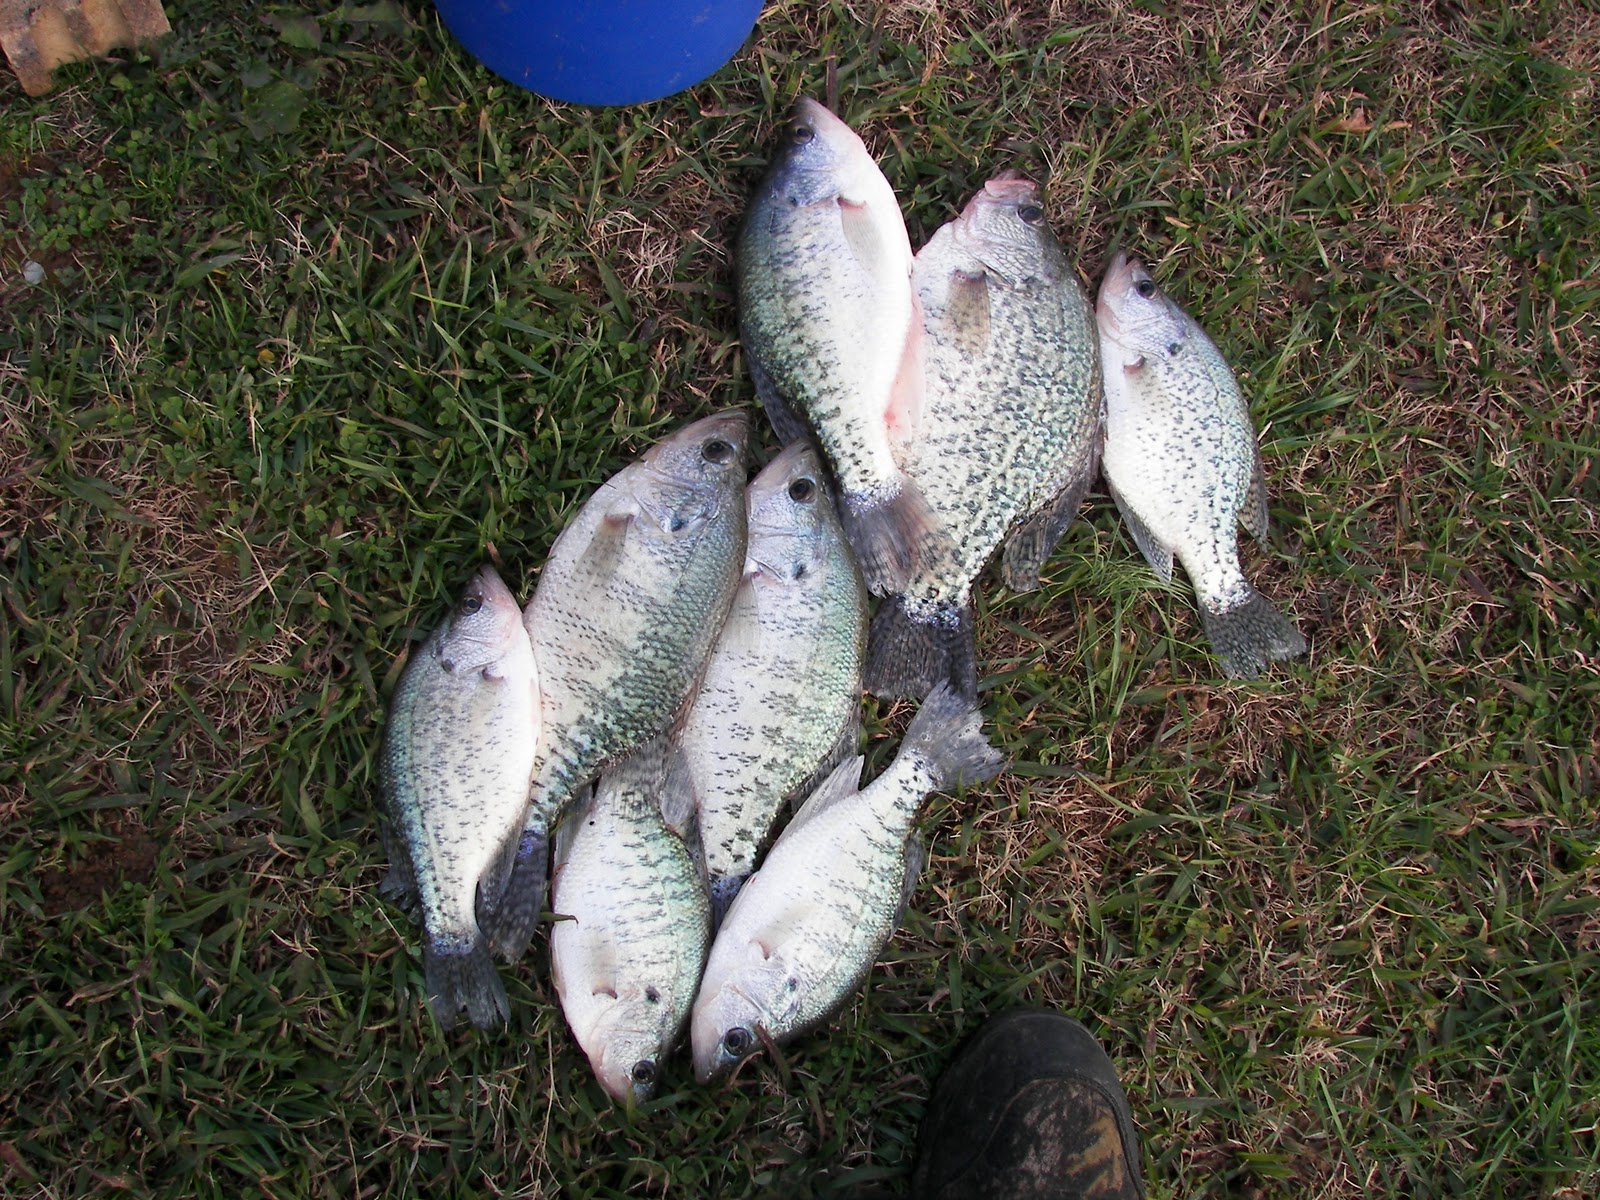 East tn crappie douglas lake and cherokee lake fishing for Crappie fishing in tennessee